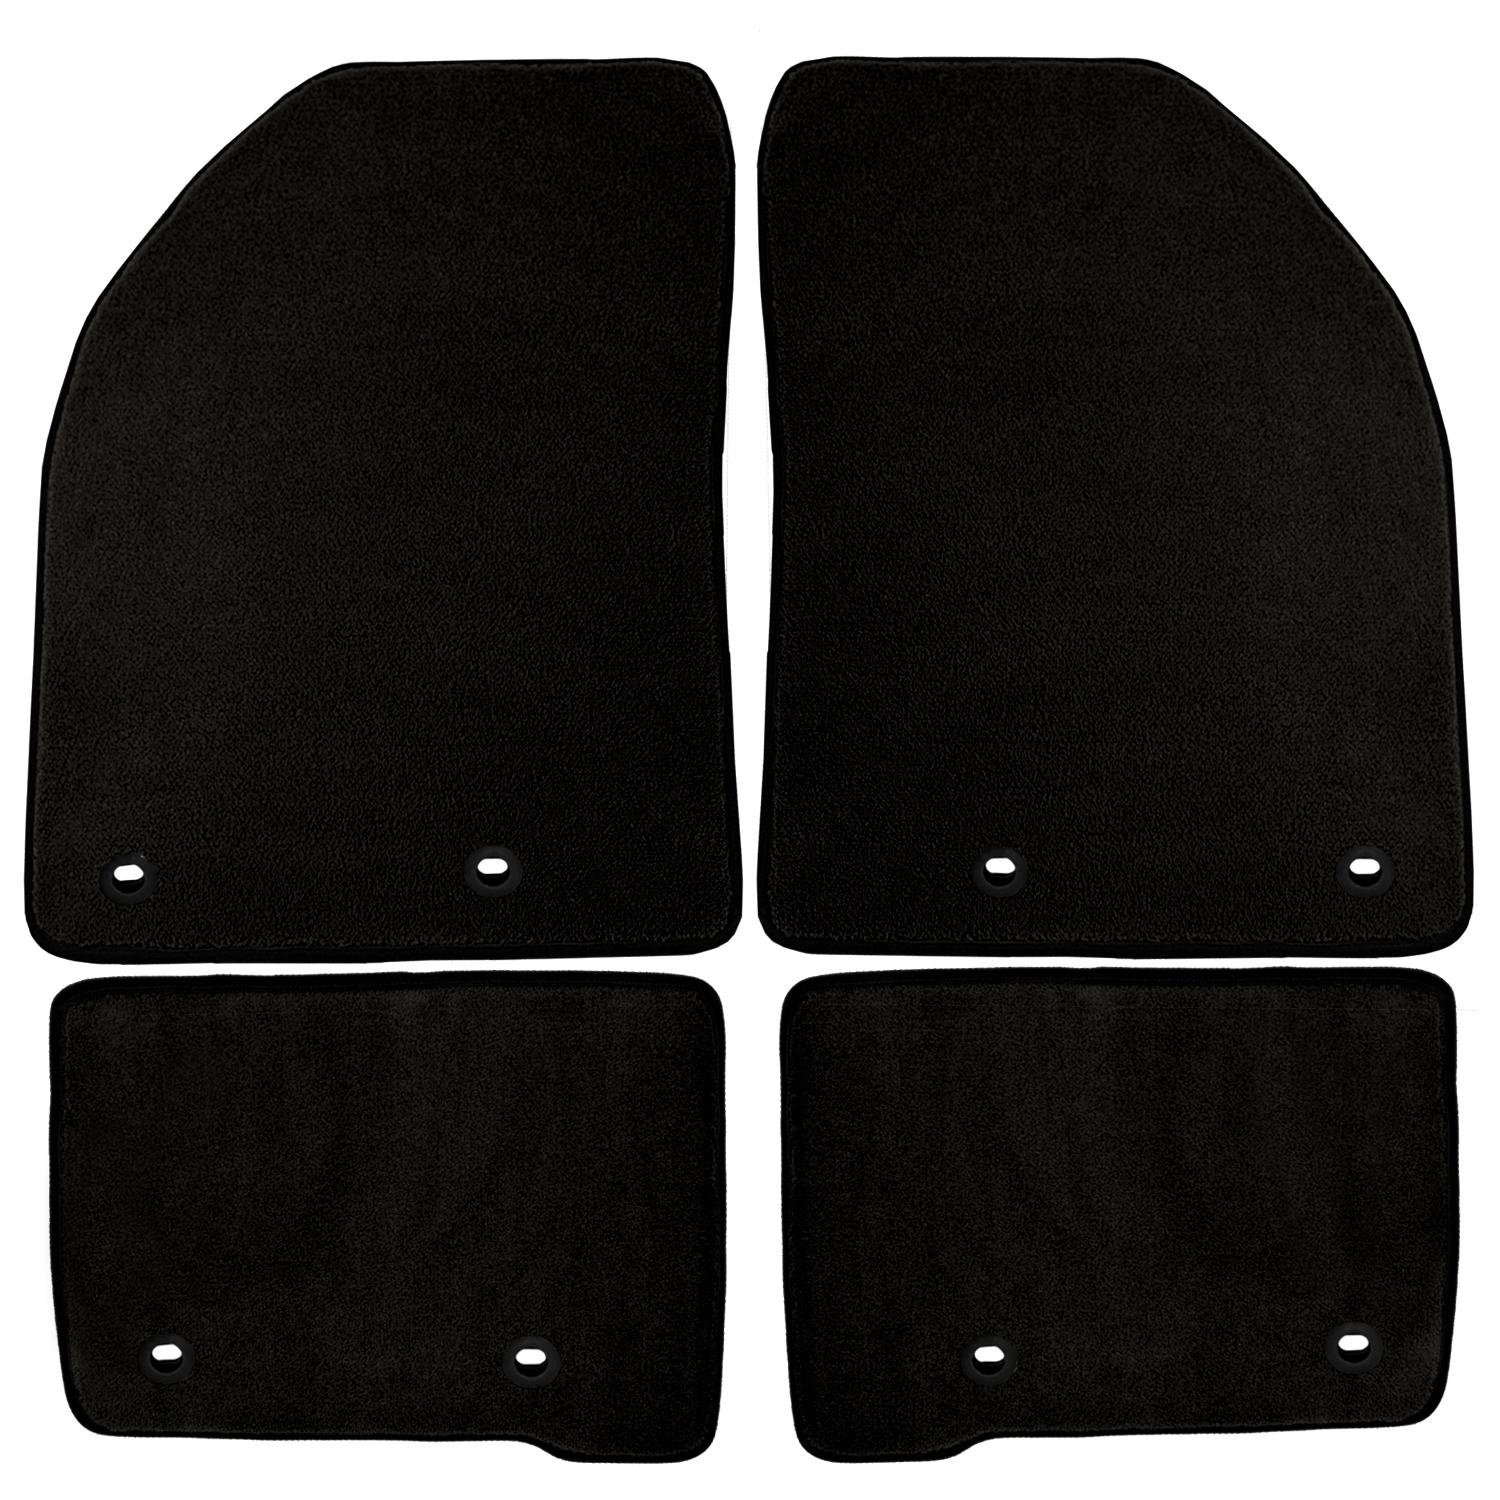 Nylon Carpet CFMBX1HI9250 Black Coverking Custom Fit Front and Rear Floor Mats for Select Hyundai Tiburon Models